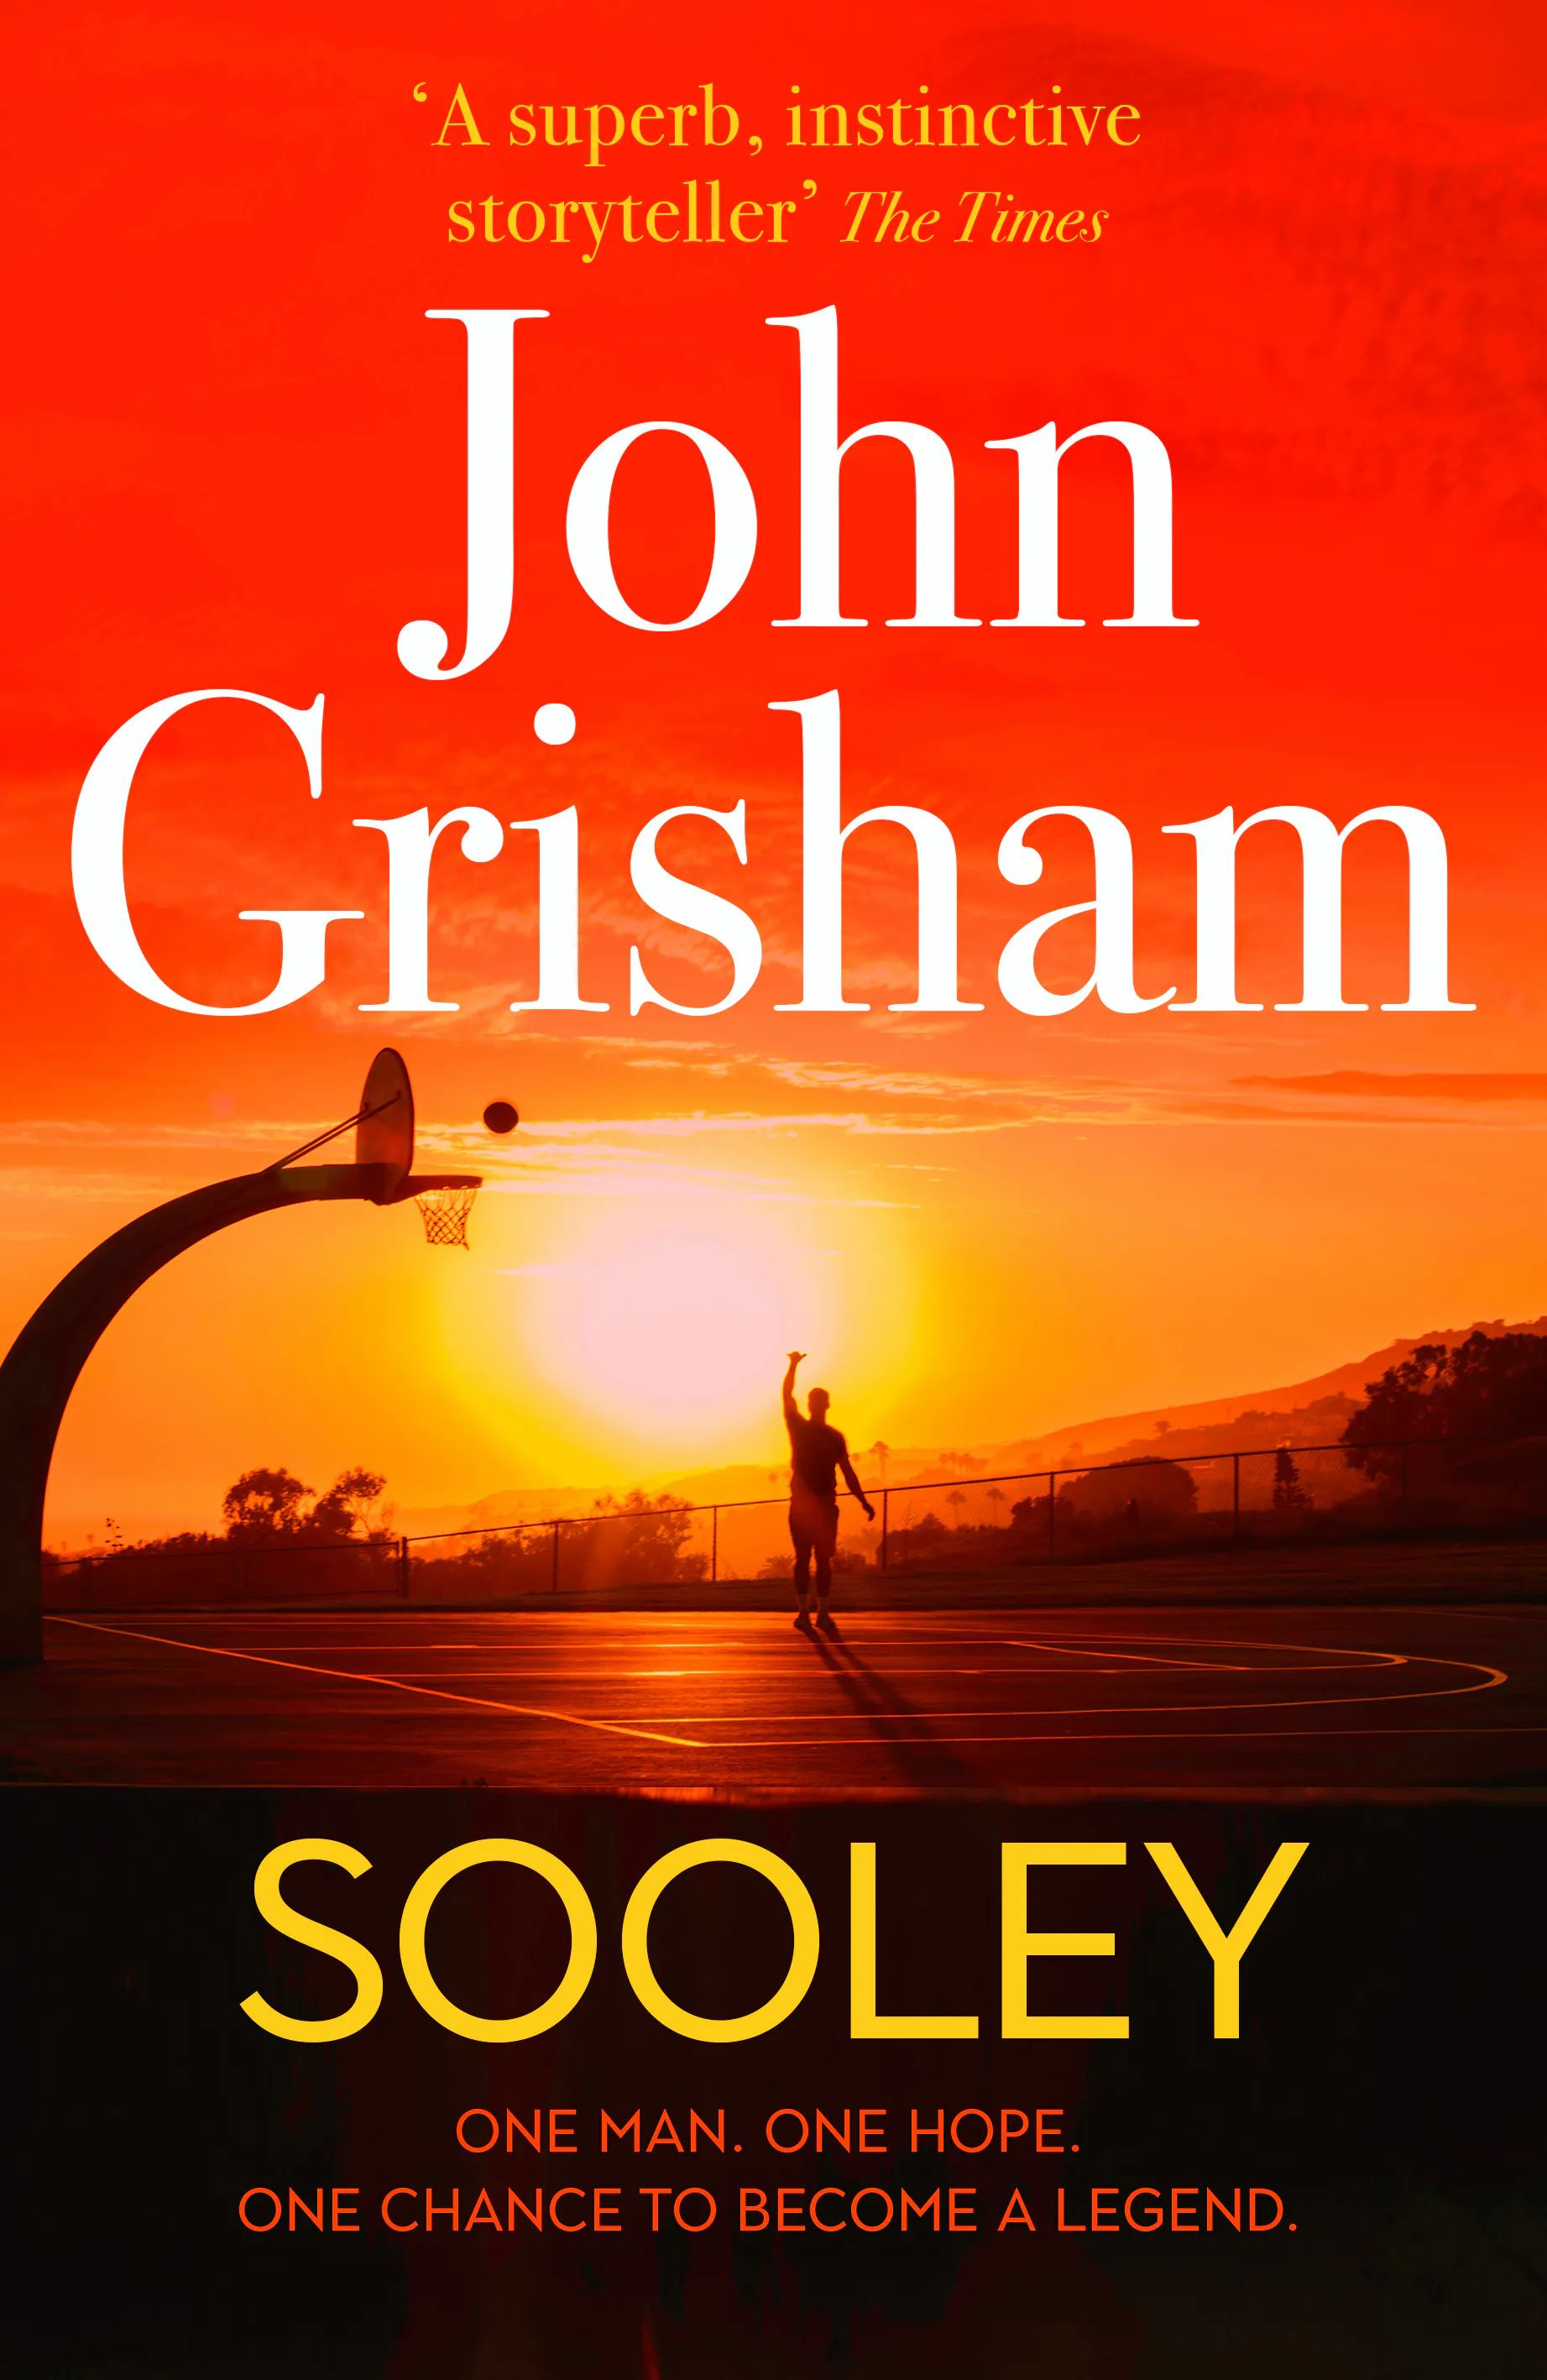 Sooley : ONE MAN. ONE HOPE. ONCE CHANCE TO BECOME A LEGEND.